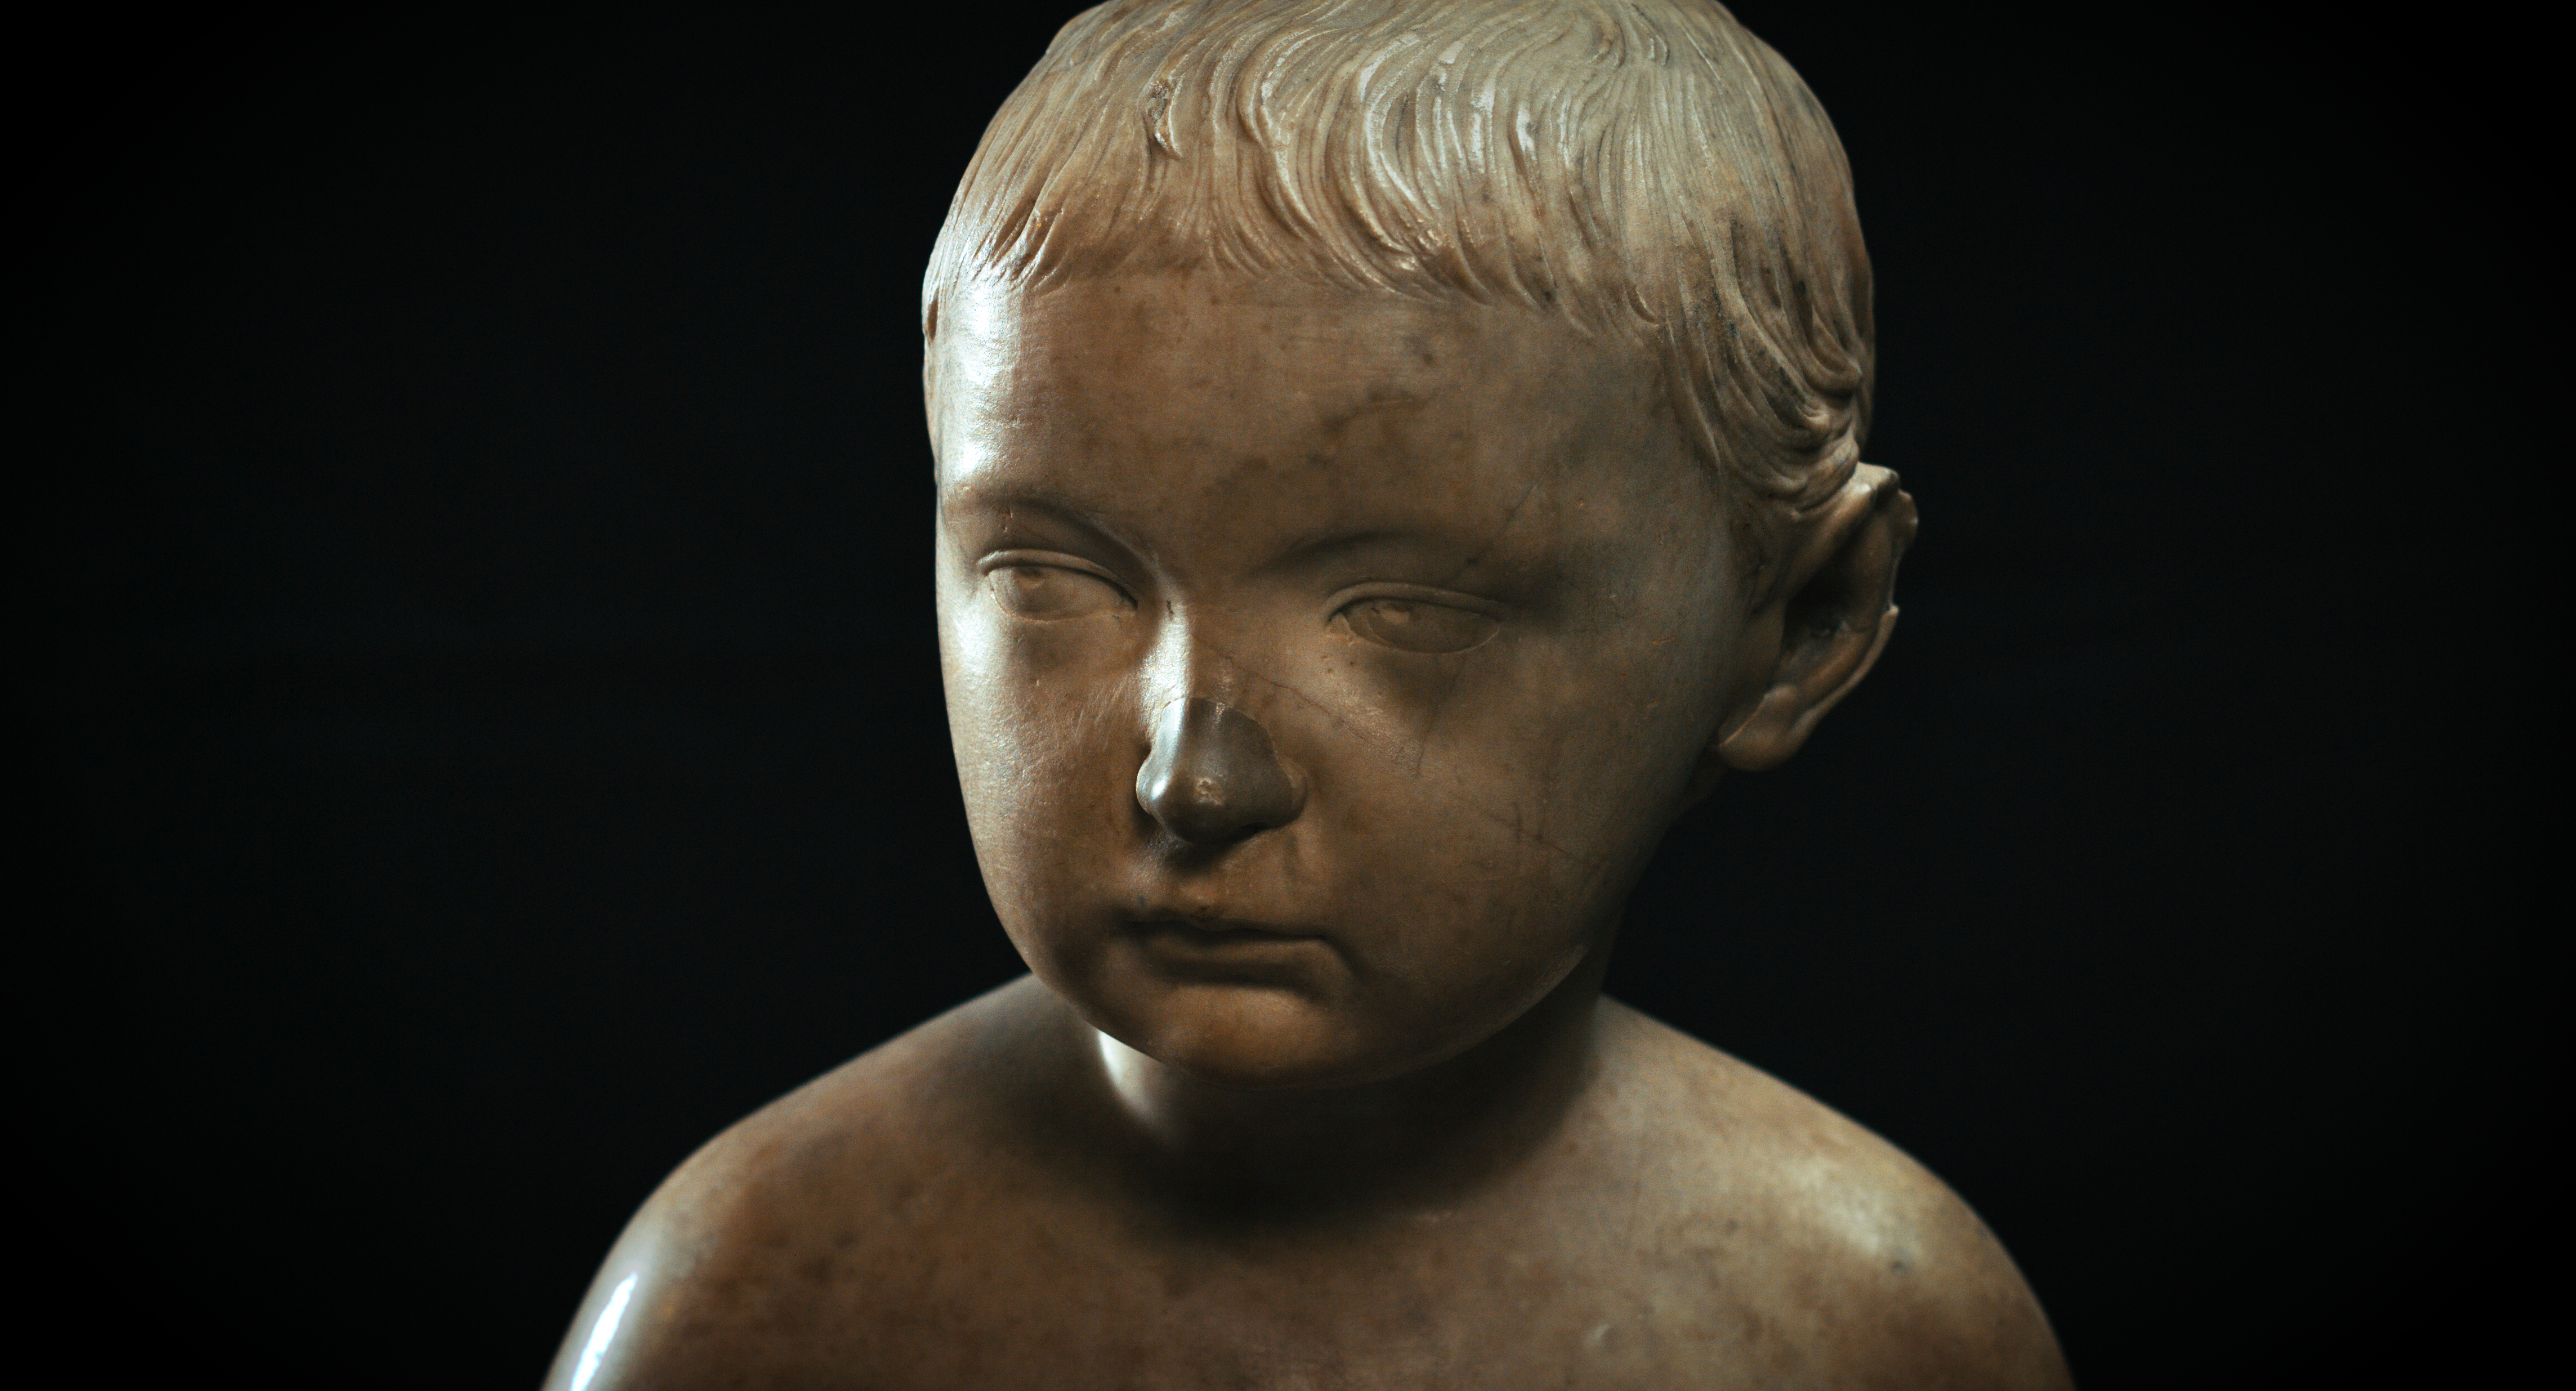 Marble bust of a boy's head and shoulders